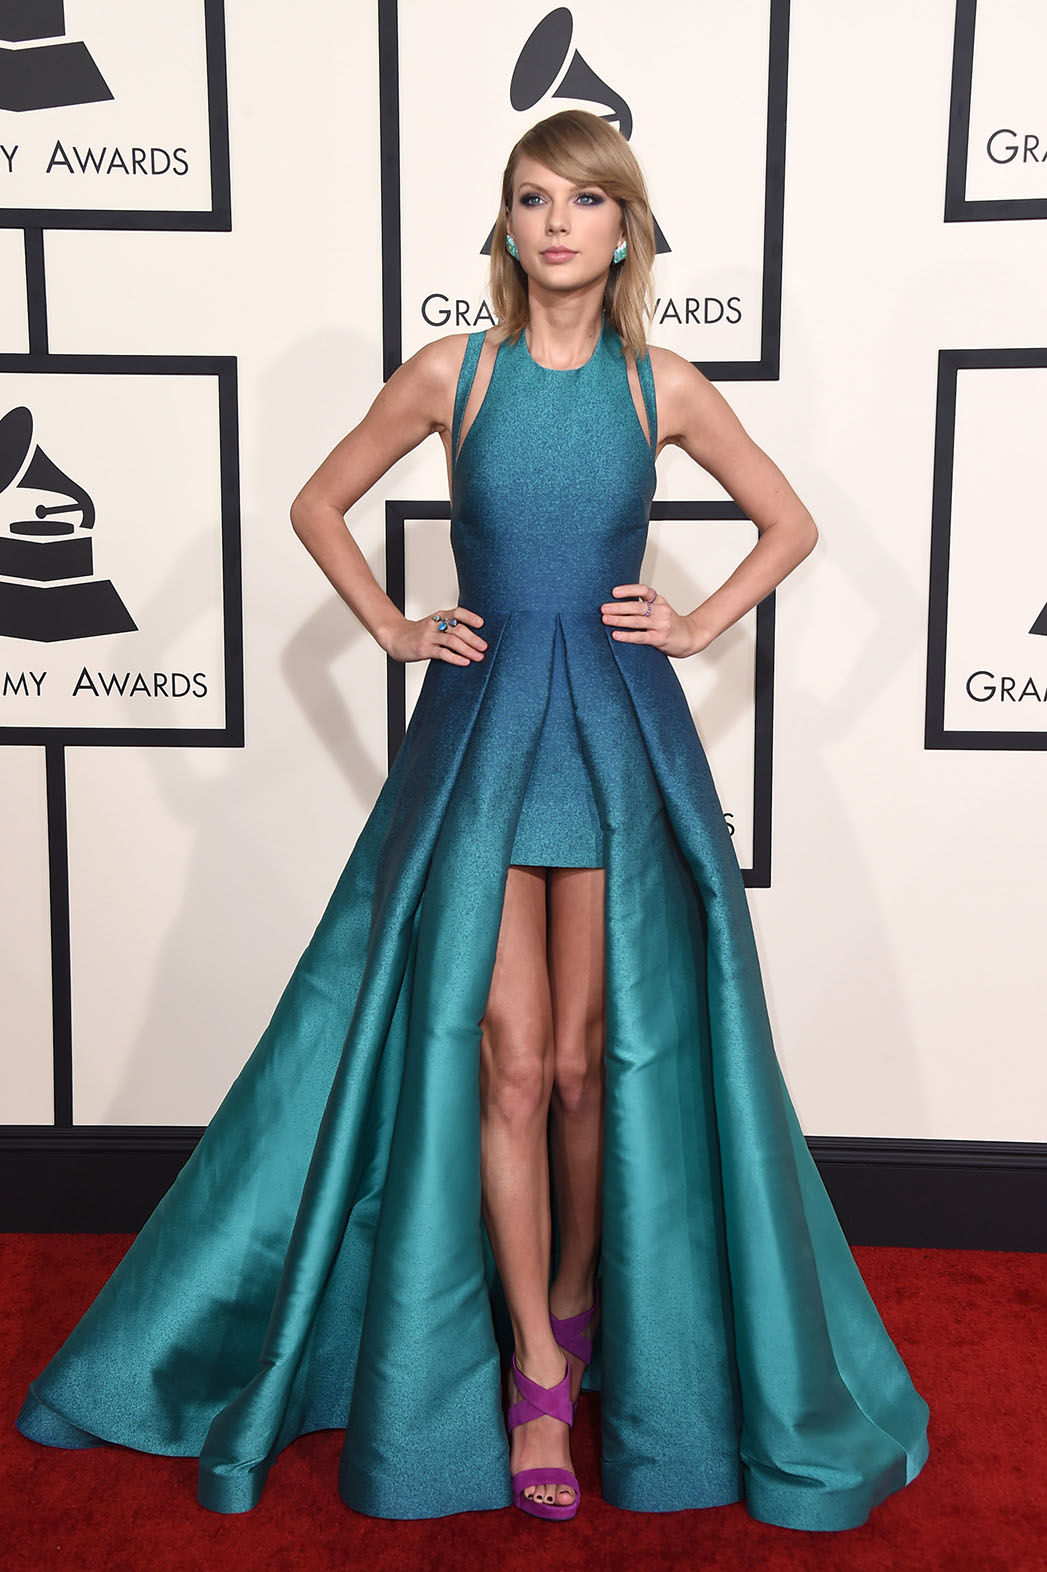 Taylor Swift Shoes Grammys - P 2015